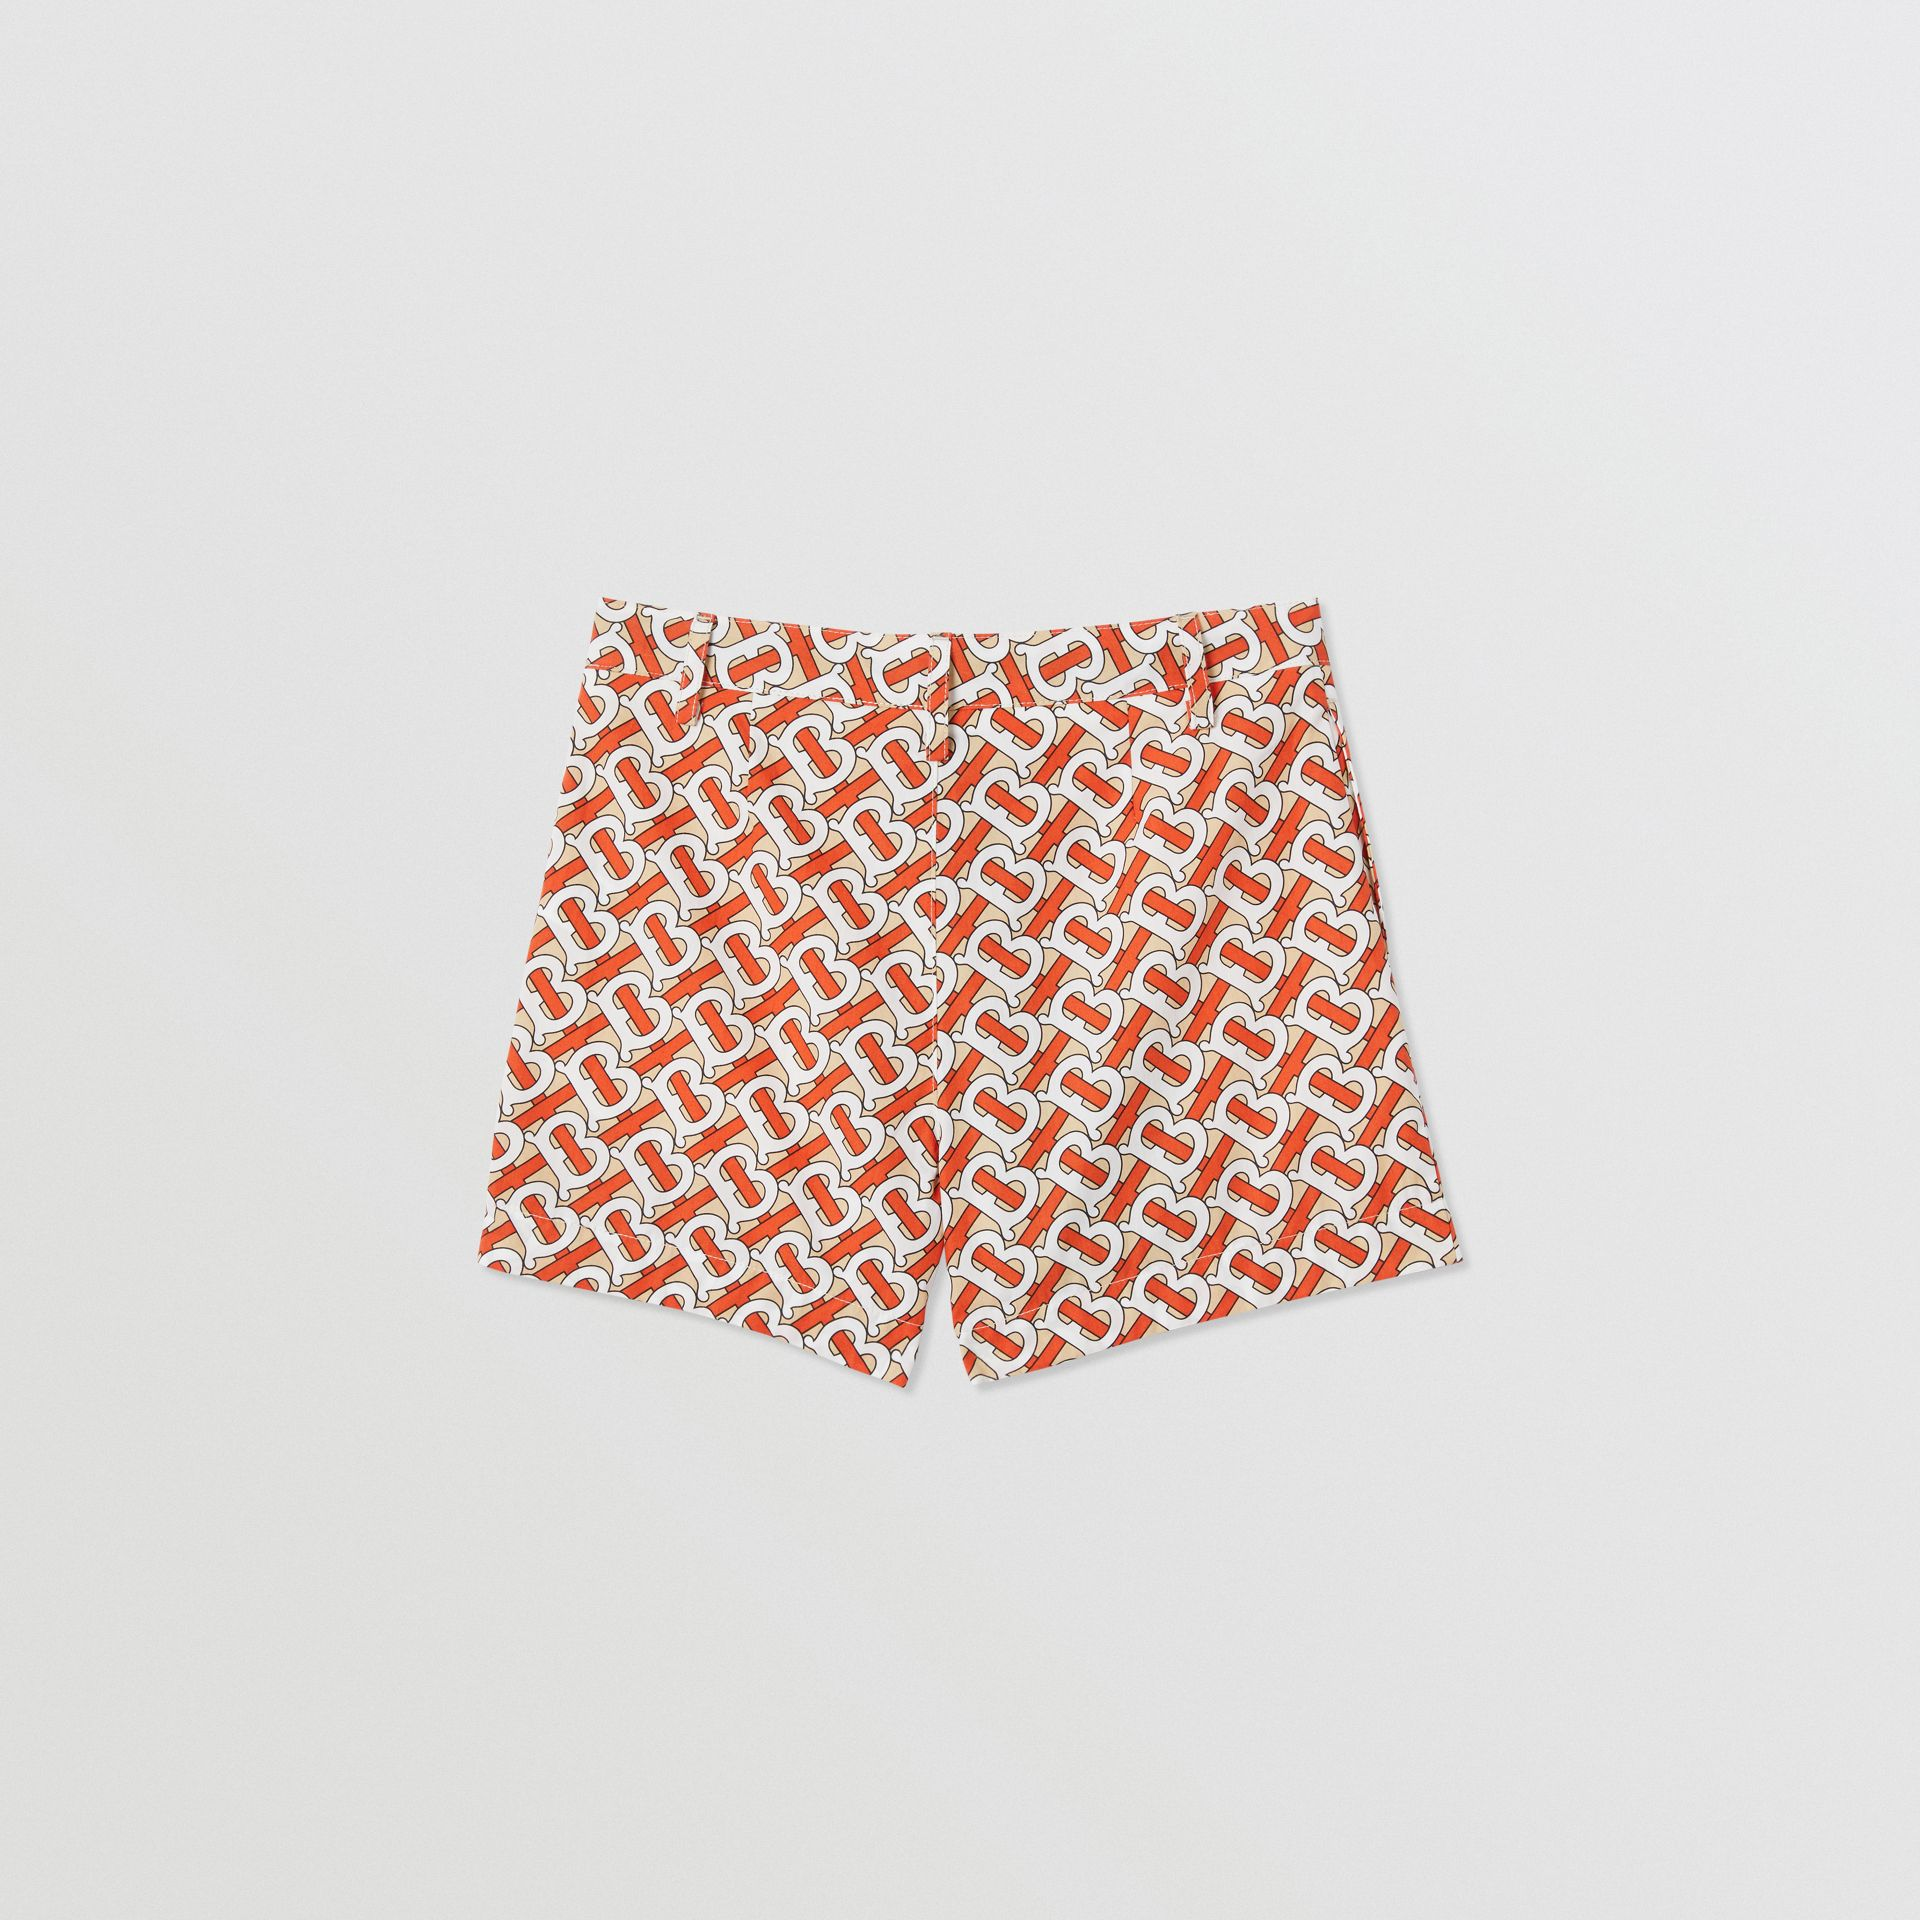 Monogram Print Cotton Poplin Shorts in Vermilion Red | Burberry United States - gallery image 3